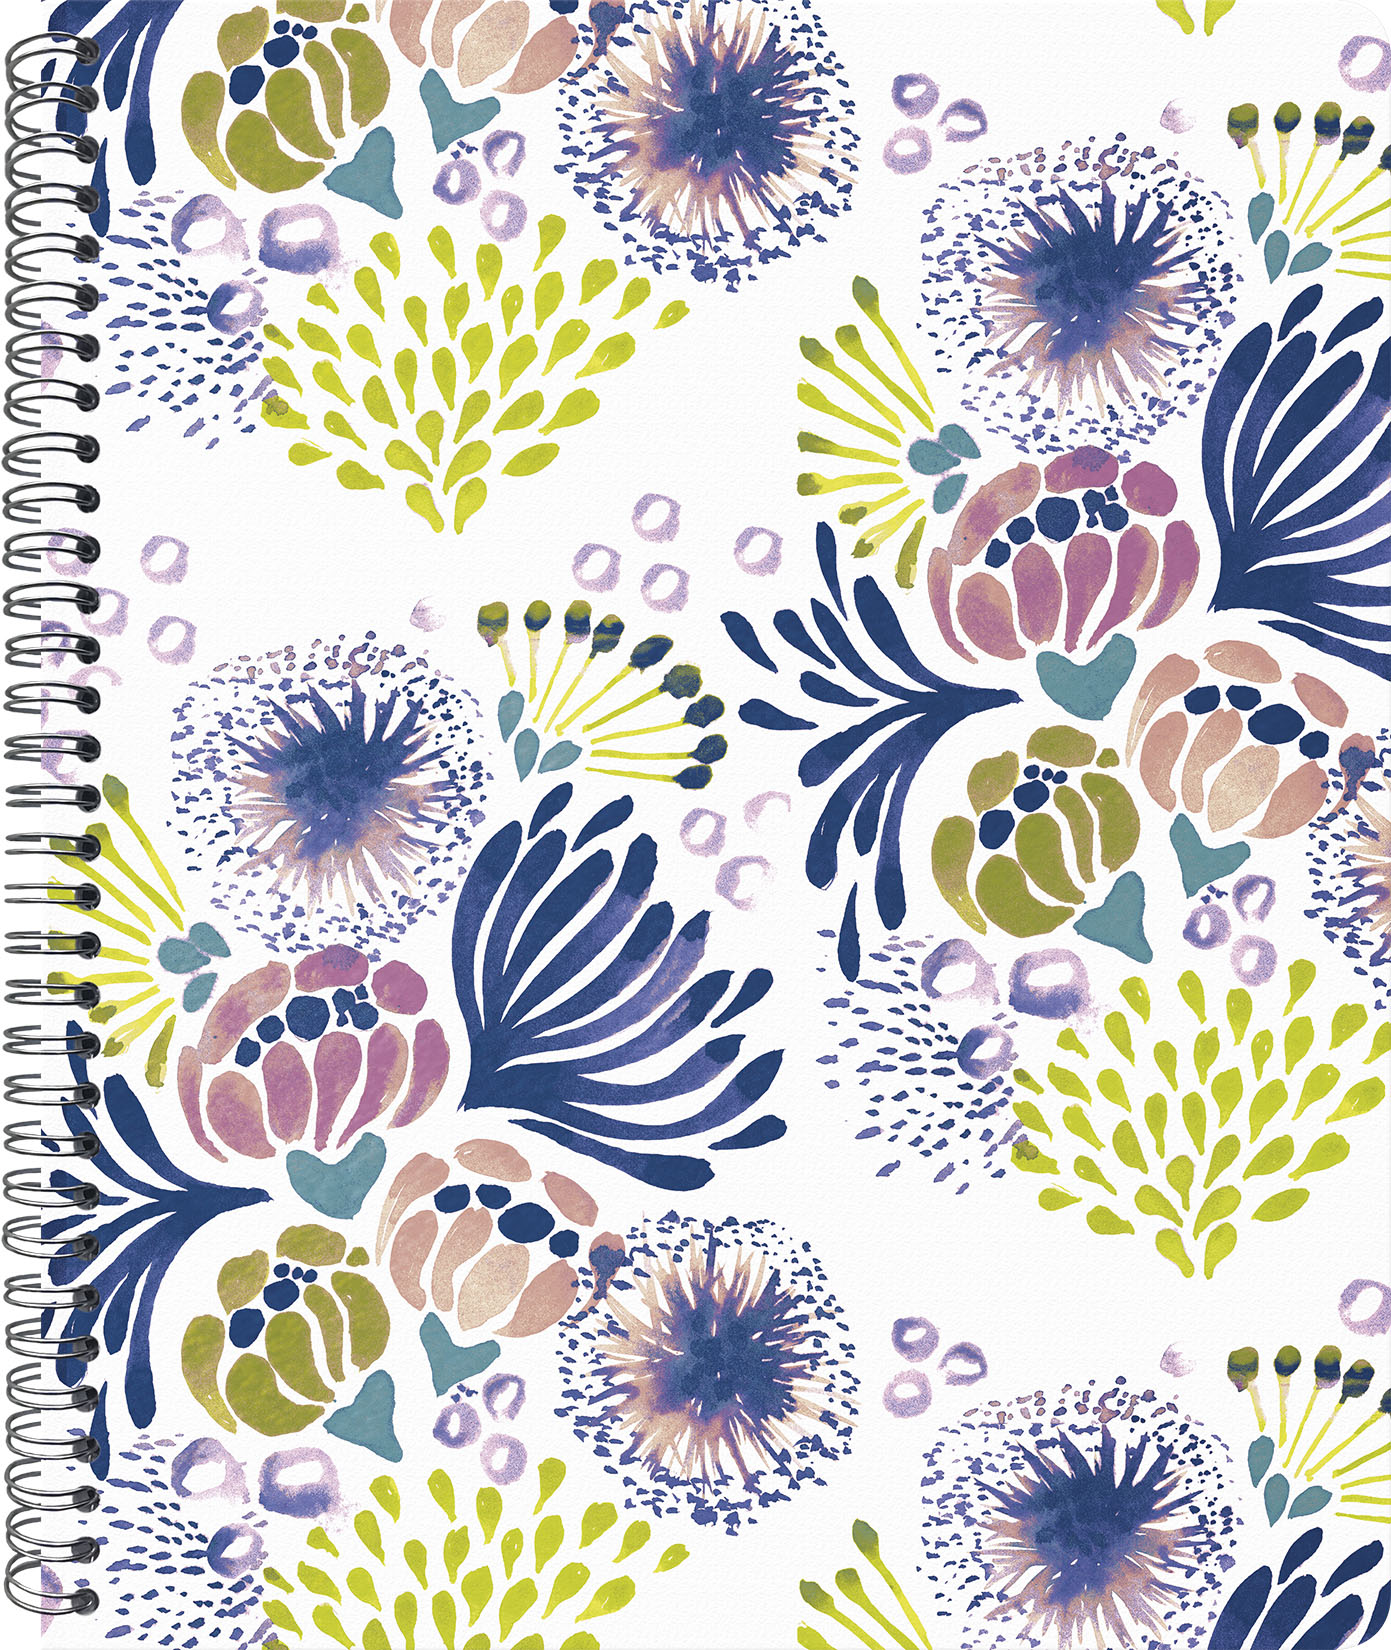 2019 Surf Weekly  Monthly Planner 8.5 x 11 by Trends International